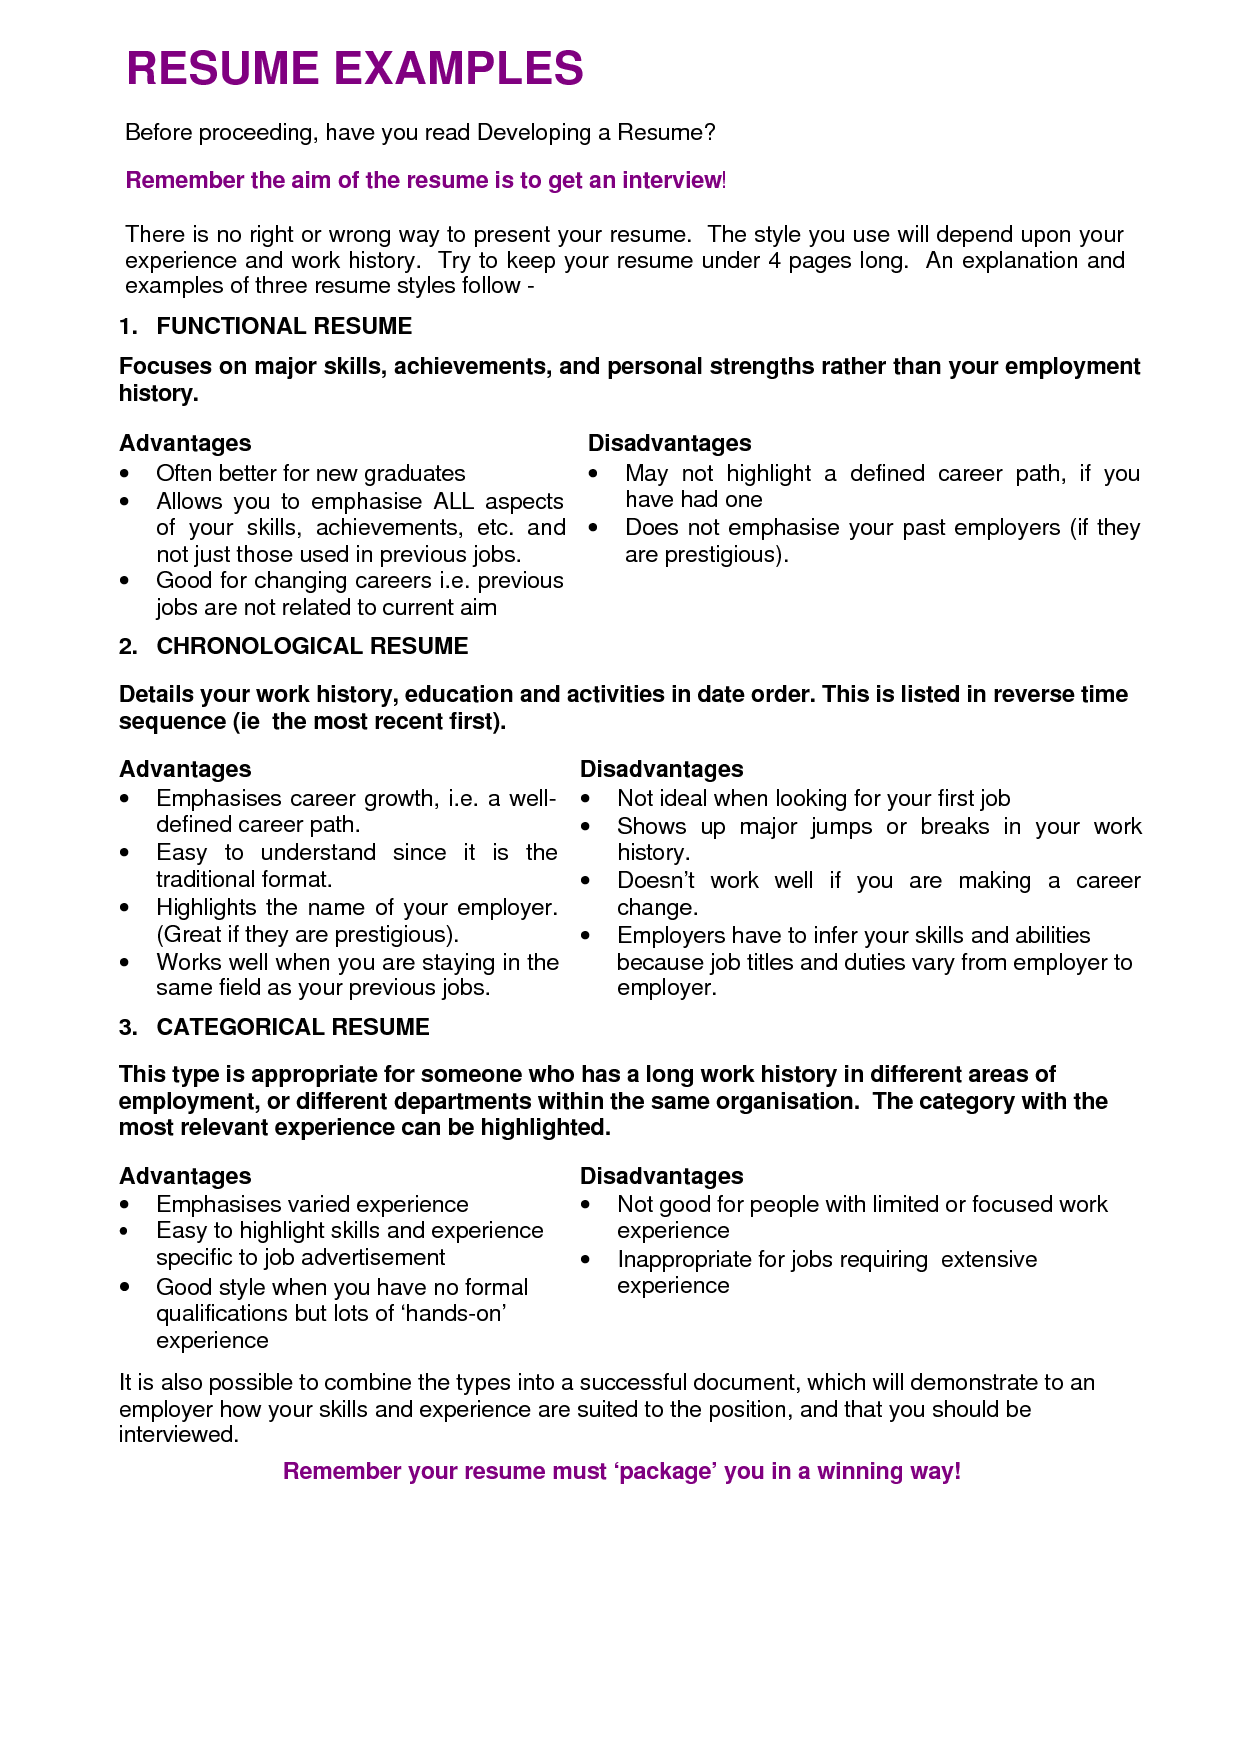 Resume objective examples best templateresume objective examples resume objective examples best templateresume objective examples application letter sample altavistaventures